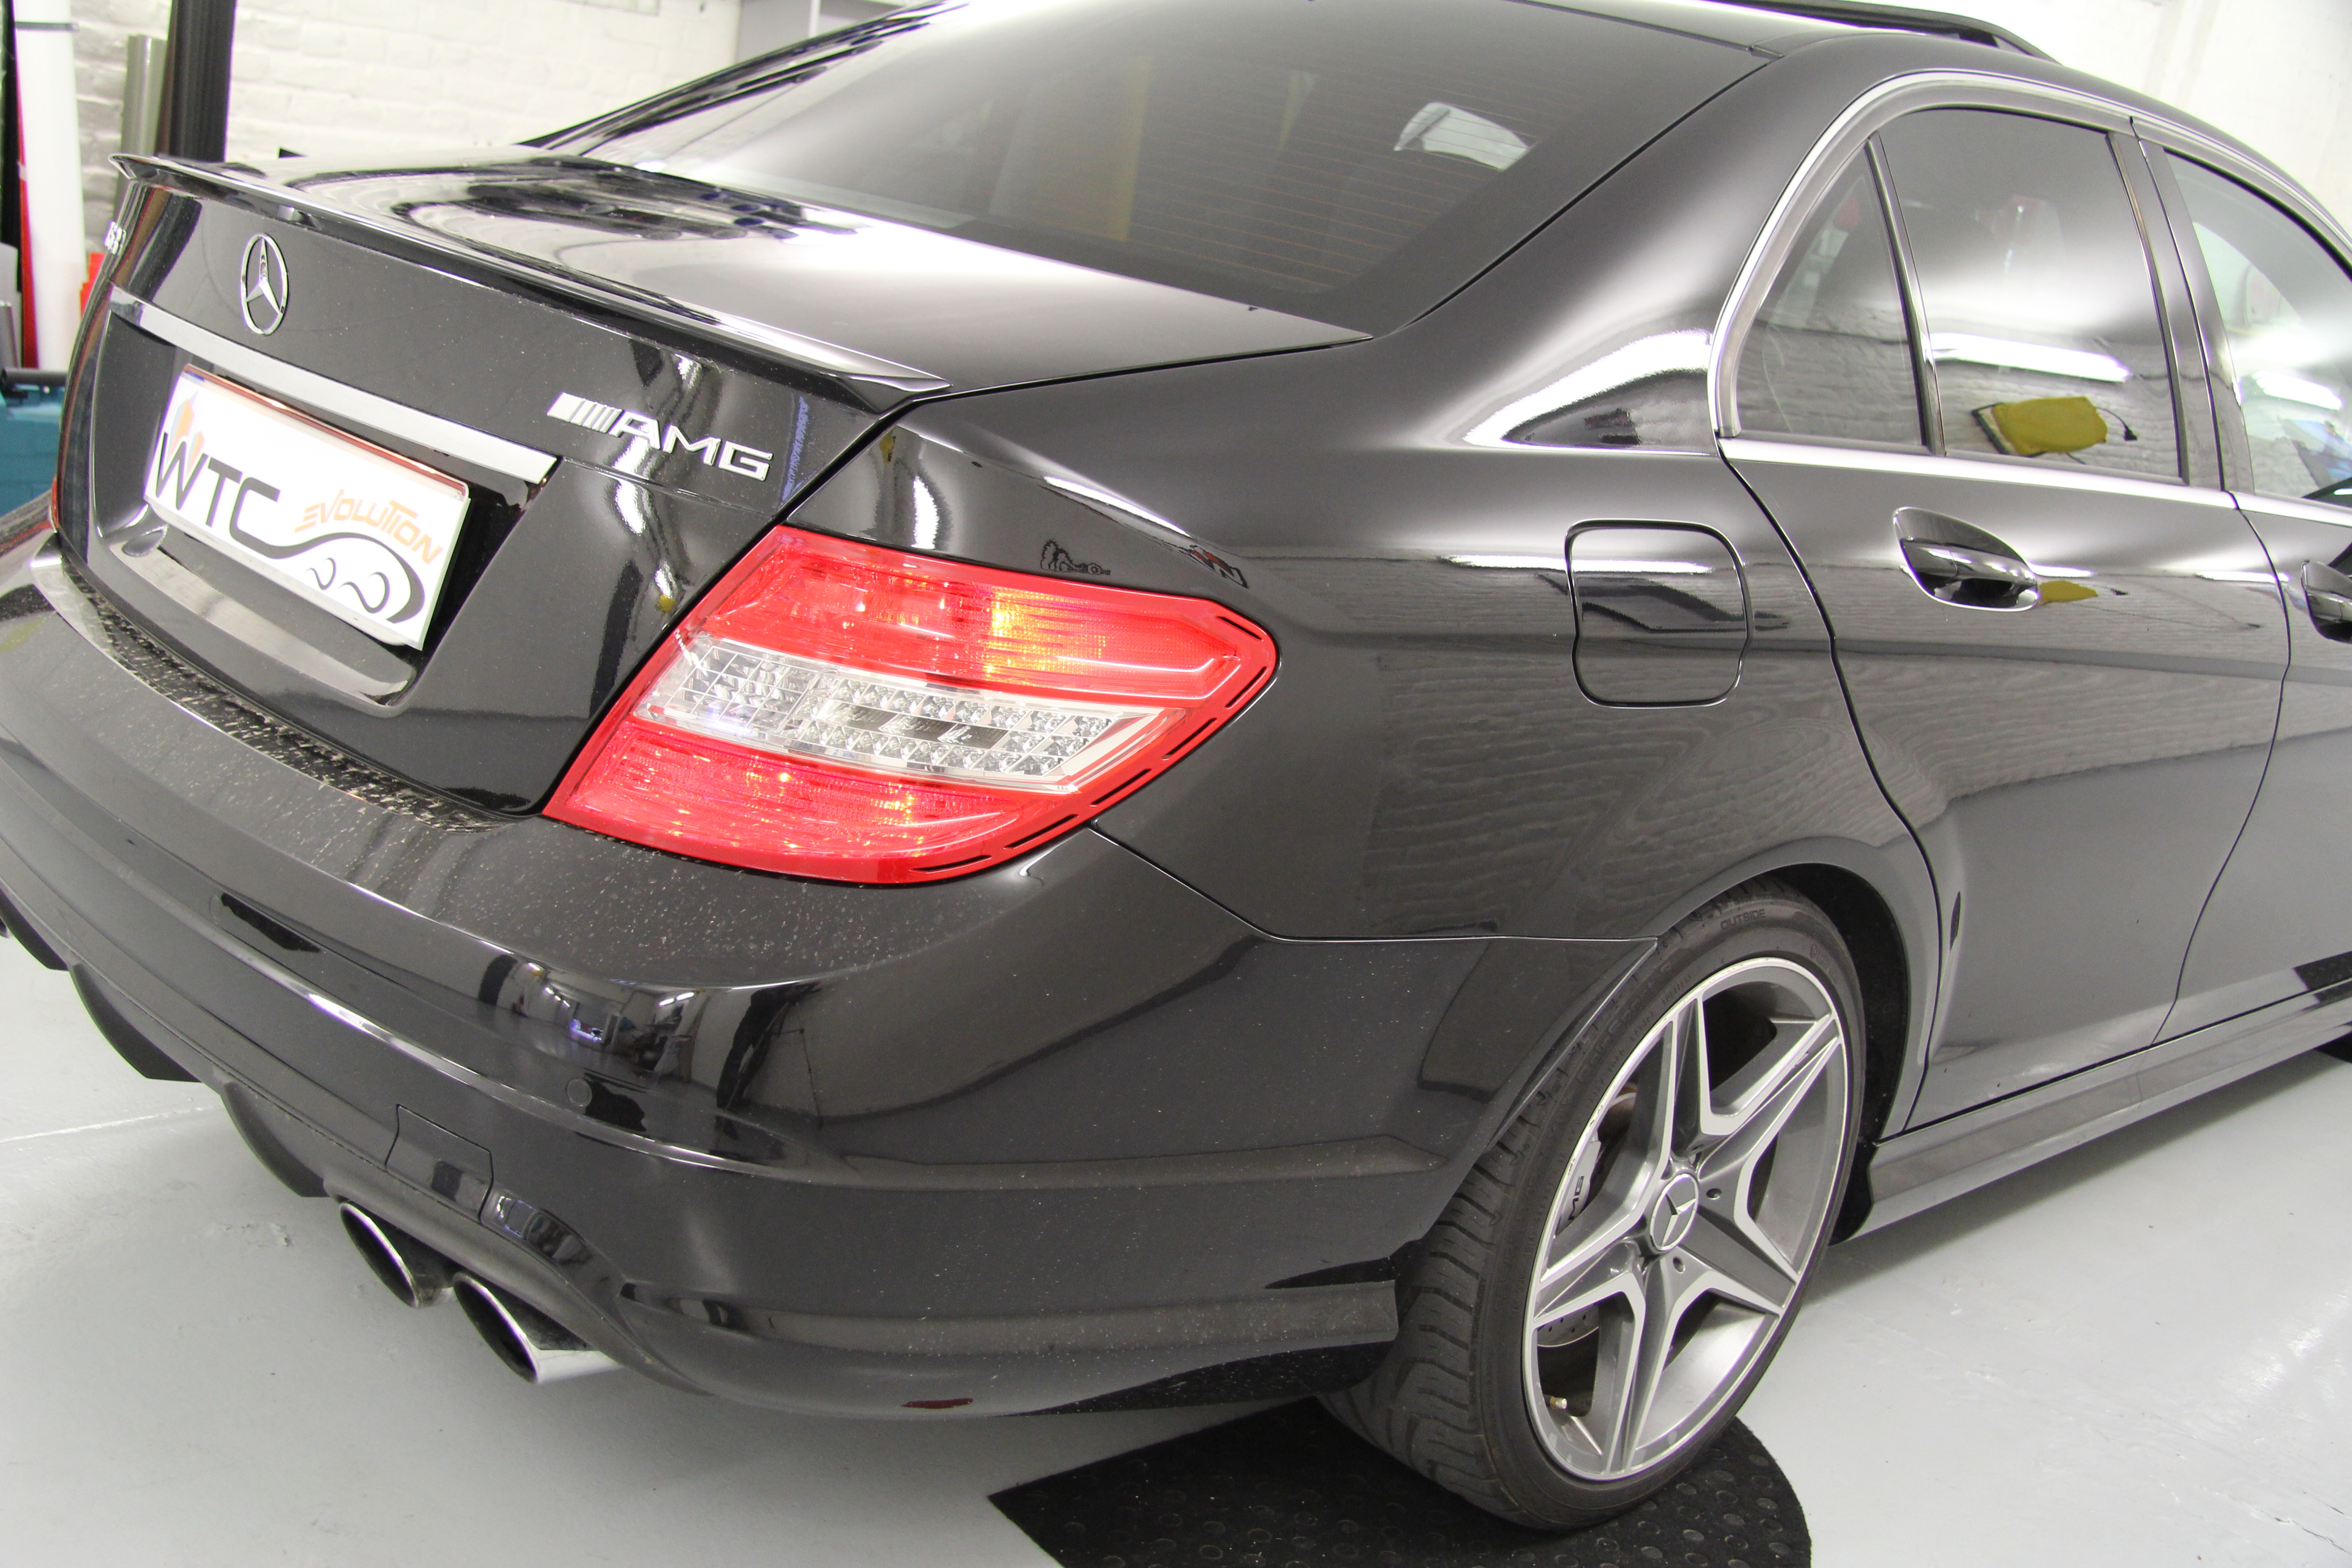 Mercedes C AMG windowtint